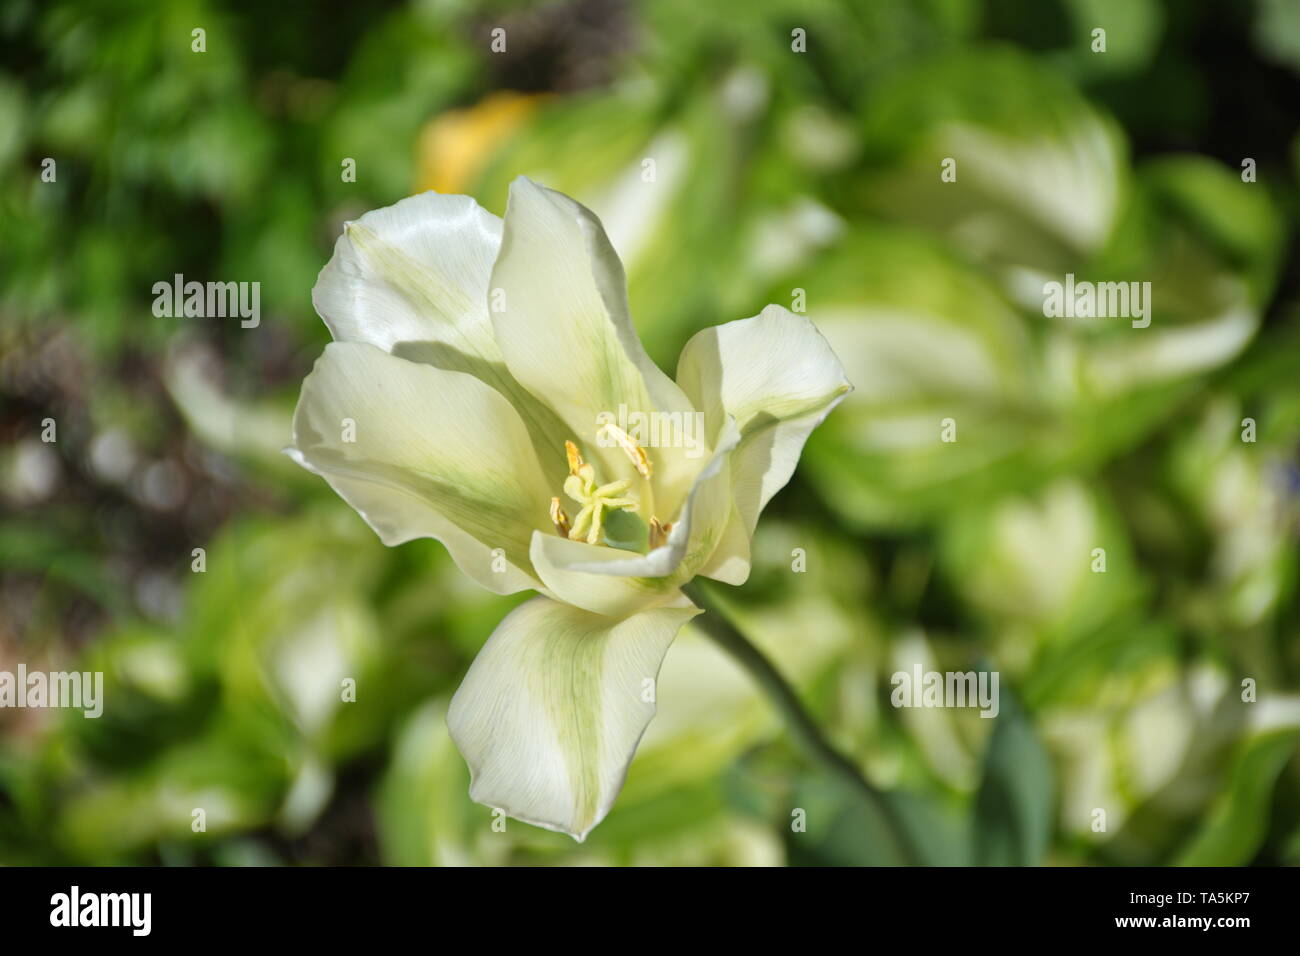 Closeup of green flower on the green background - Stock Image